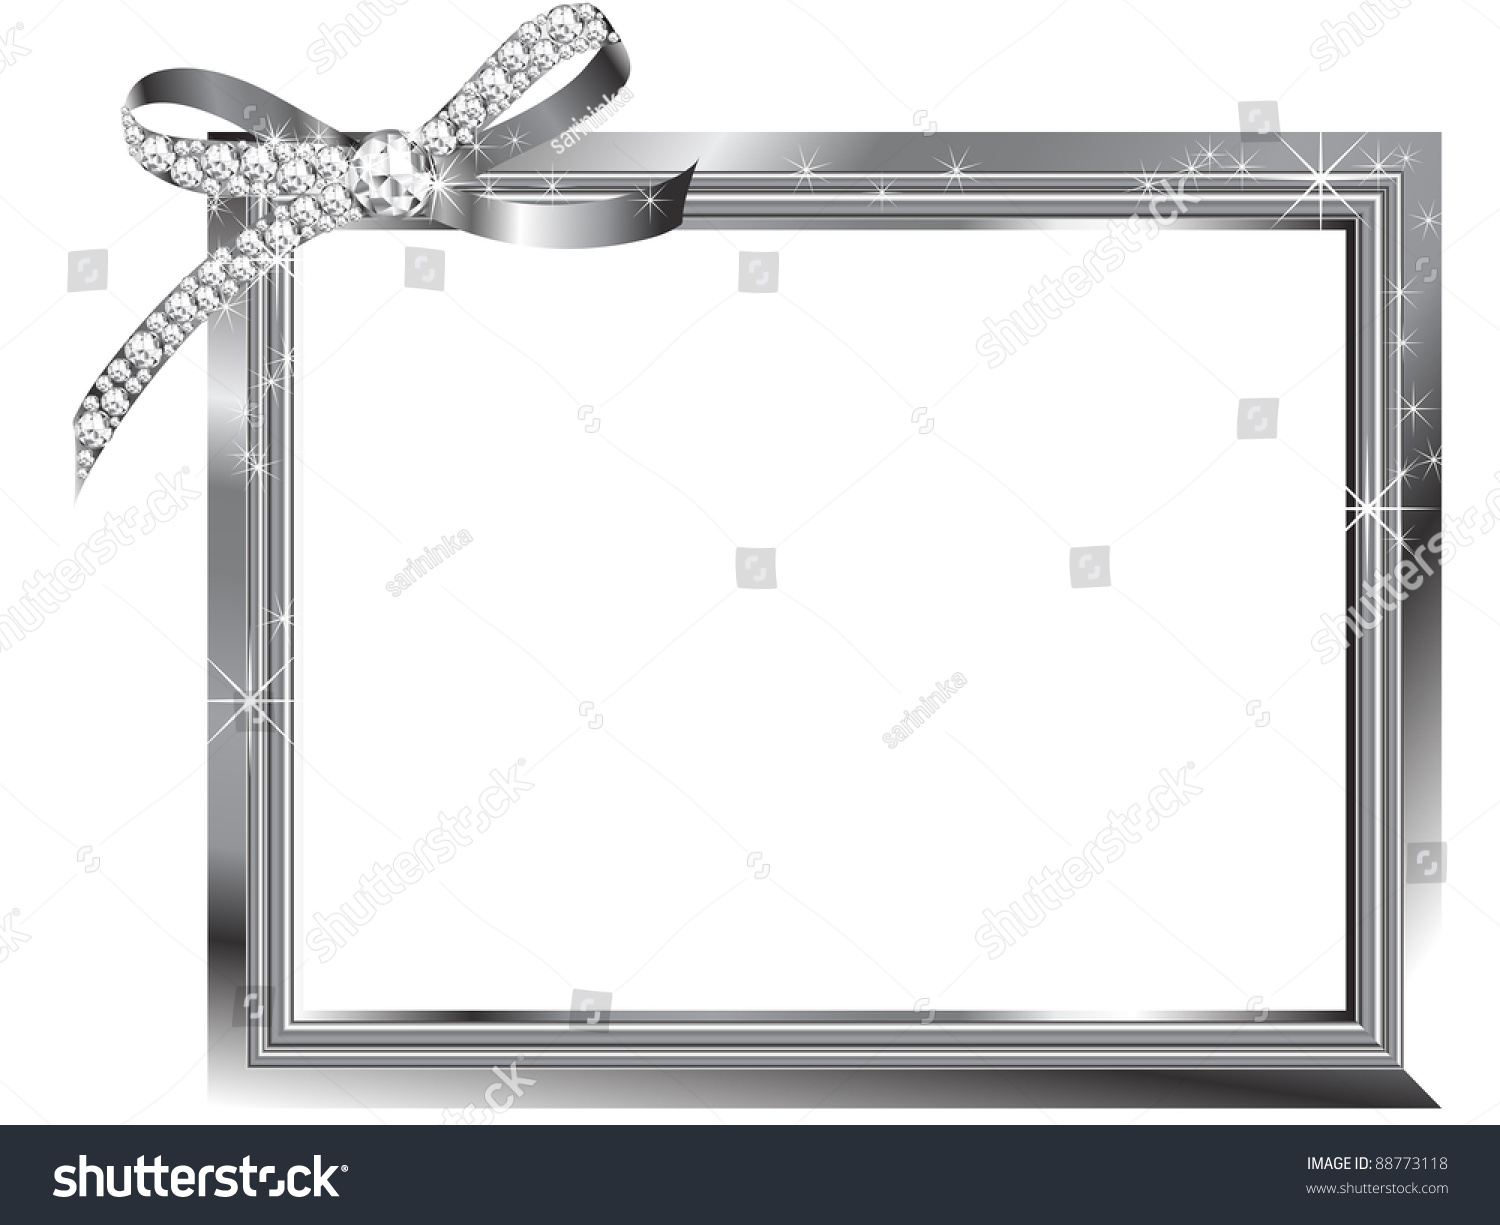 262178034292 likewise 136233957449914055 in addition Stock Vector Silver Frame With Diamond Ribbon also Croissant Transparent   Clip Art Image additionally Pearl Transparent Heart Frame with Roses. on art deco heart clip